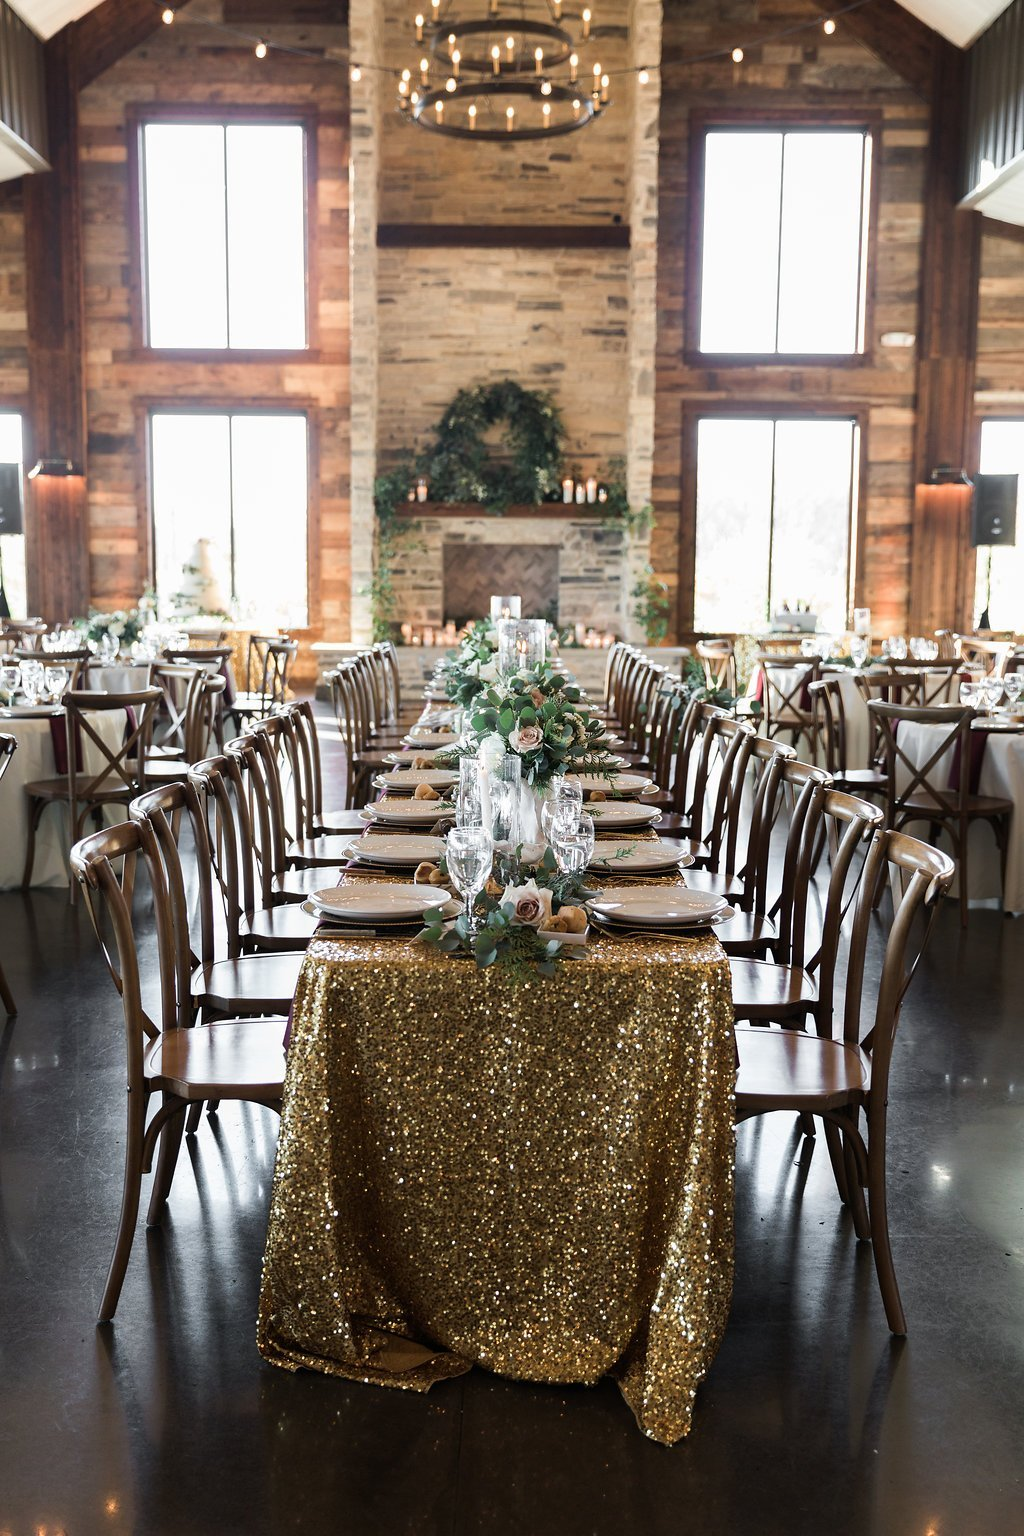 Messerli Wedding - Joshua Aull Photo - Head Table